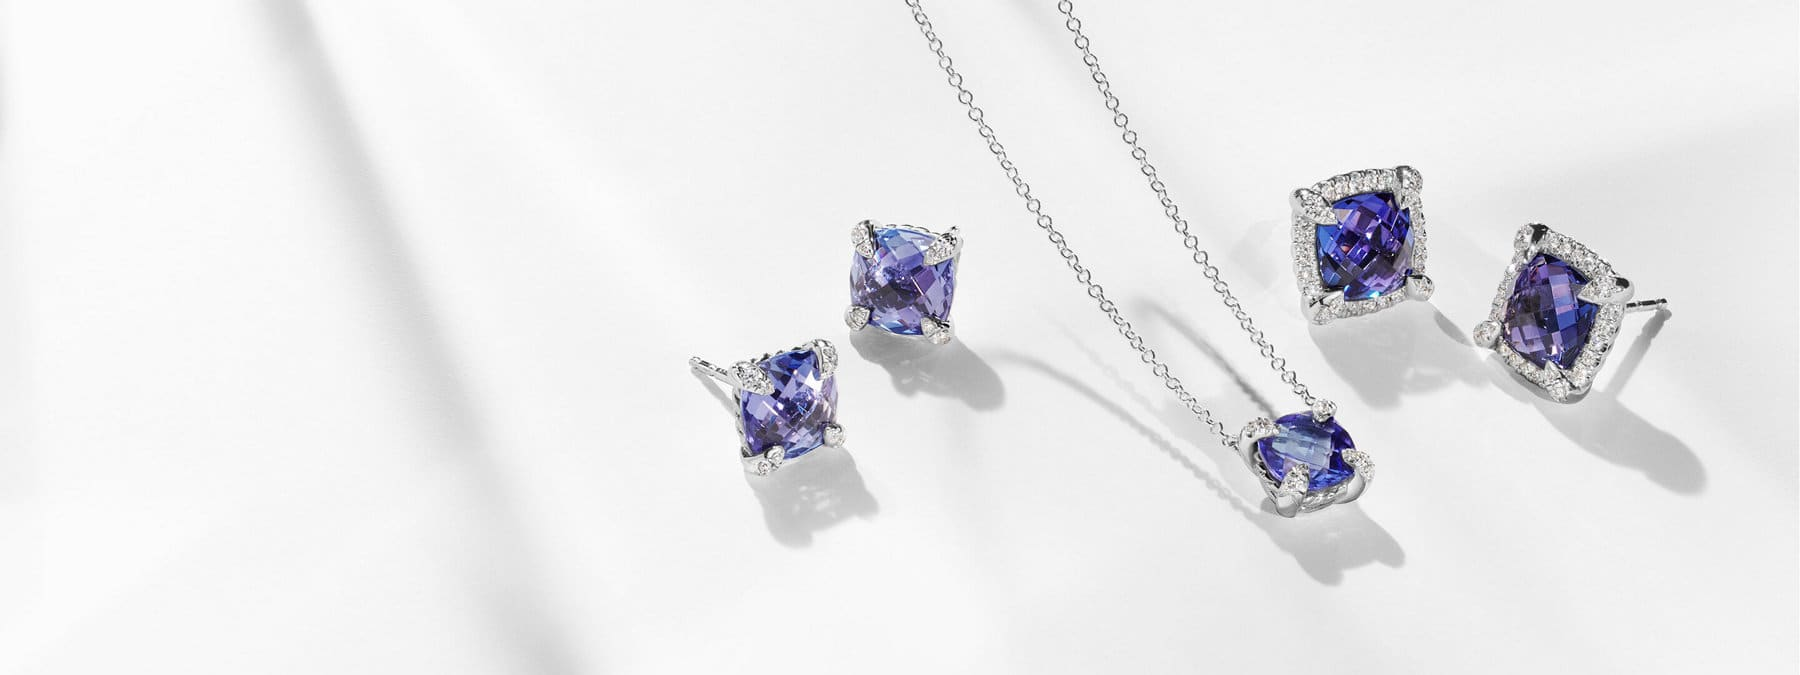 Celebrate December birthdays with tanzanite, a gemstone thought to bring transformation with its shifting hues of blue and purple.